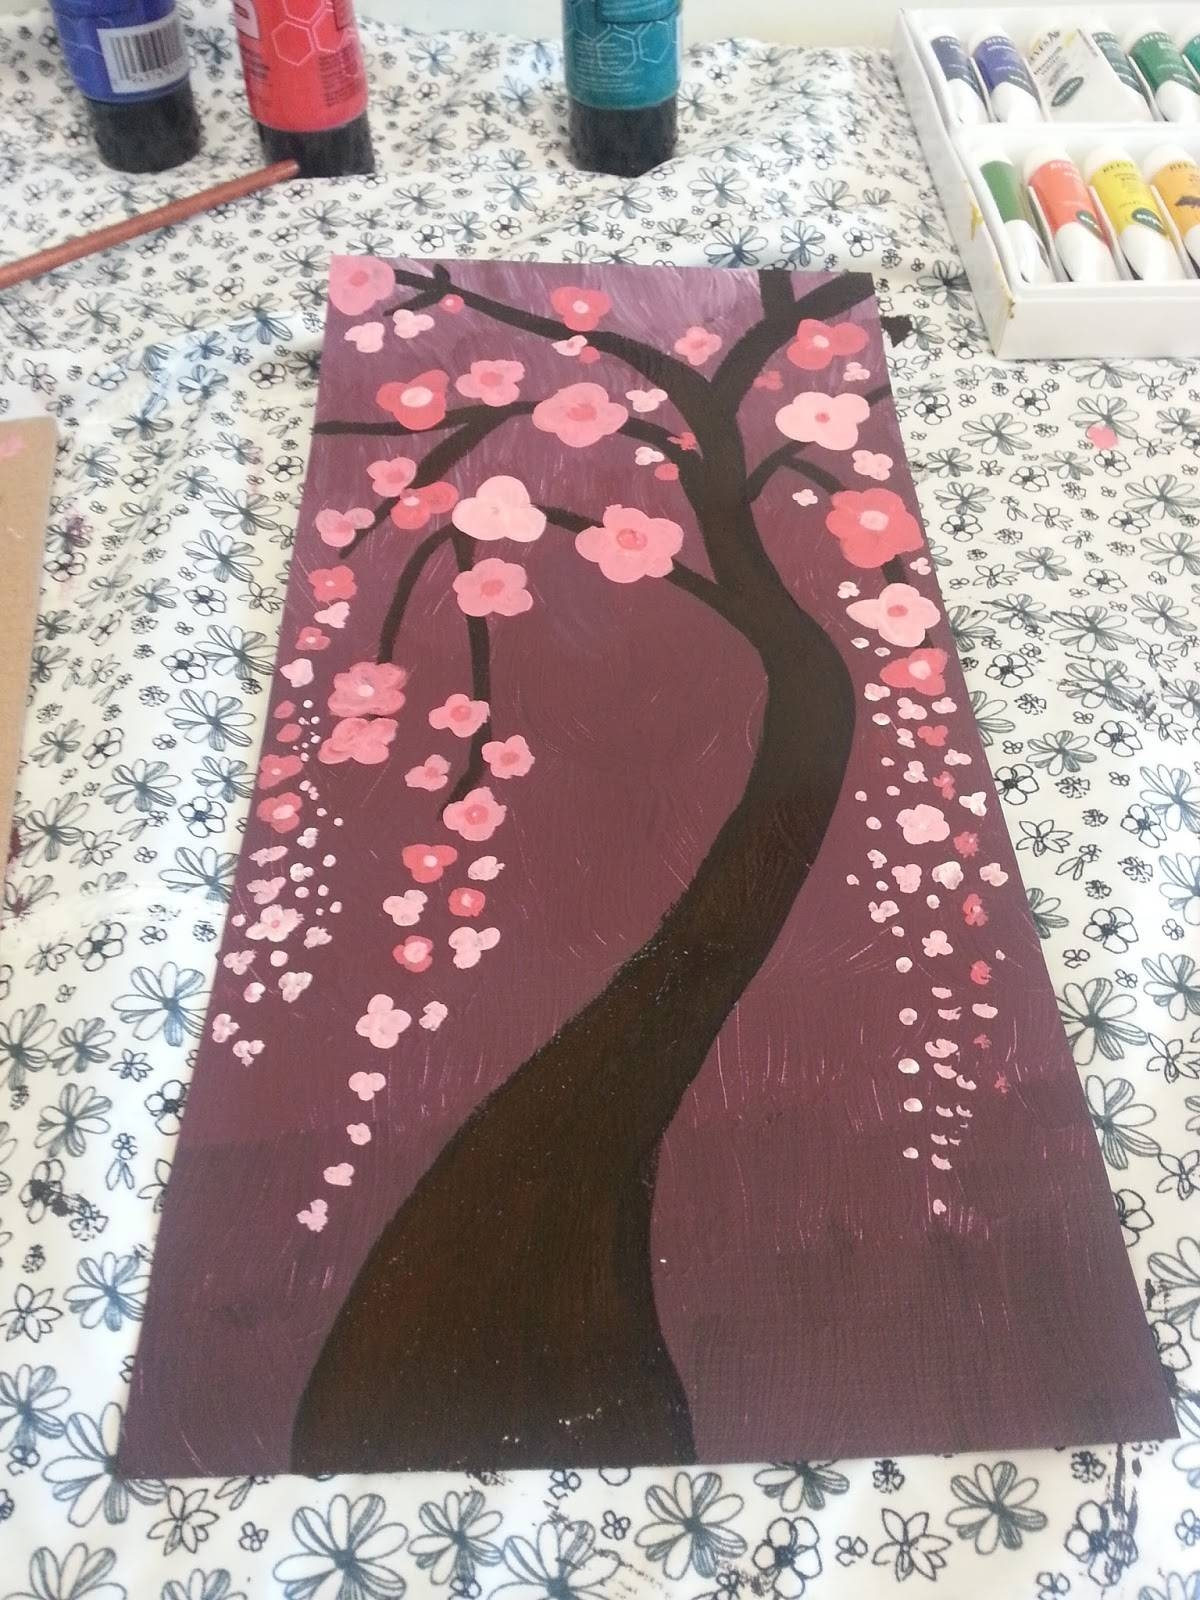 Noodle Reviews: Diy Wall Art – Cherry Blossoms With Acrylic Paint For Recent Red Cherry Blossom Wall Art (View 14 of 30)